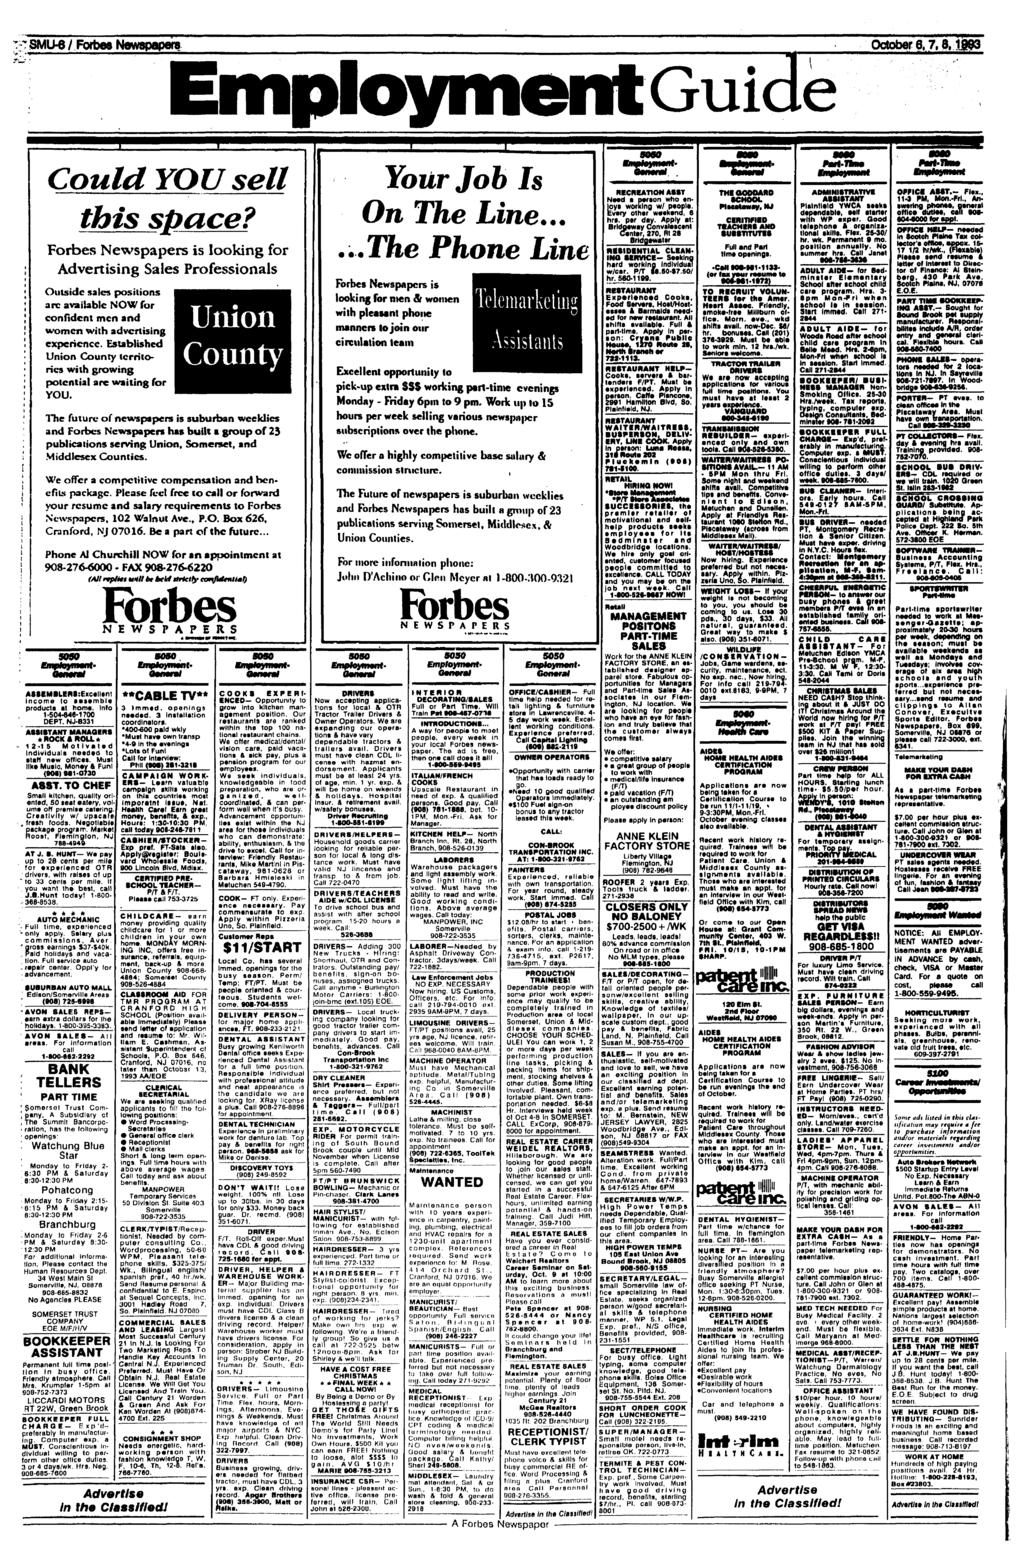 NewspapersEmployment SMU-6 /Forbes October Guide 6,7,8,1993 Could YOU sell this space?